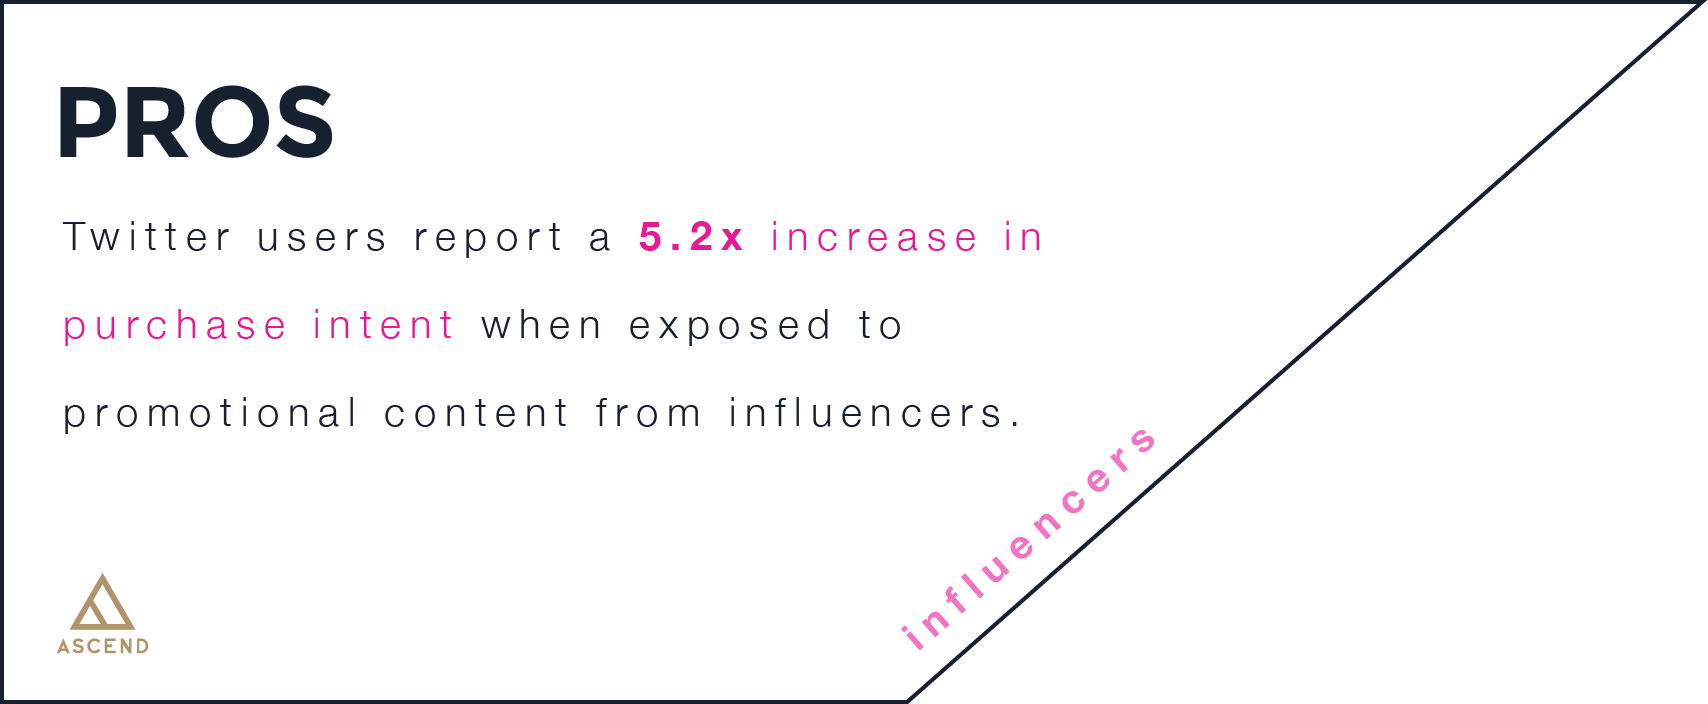 infographic with the pros of influencer marketing